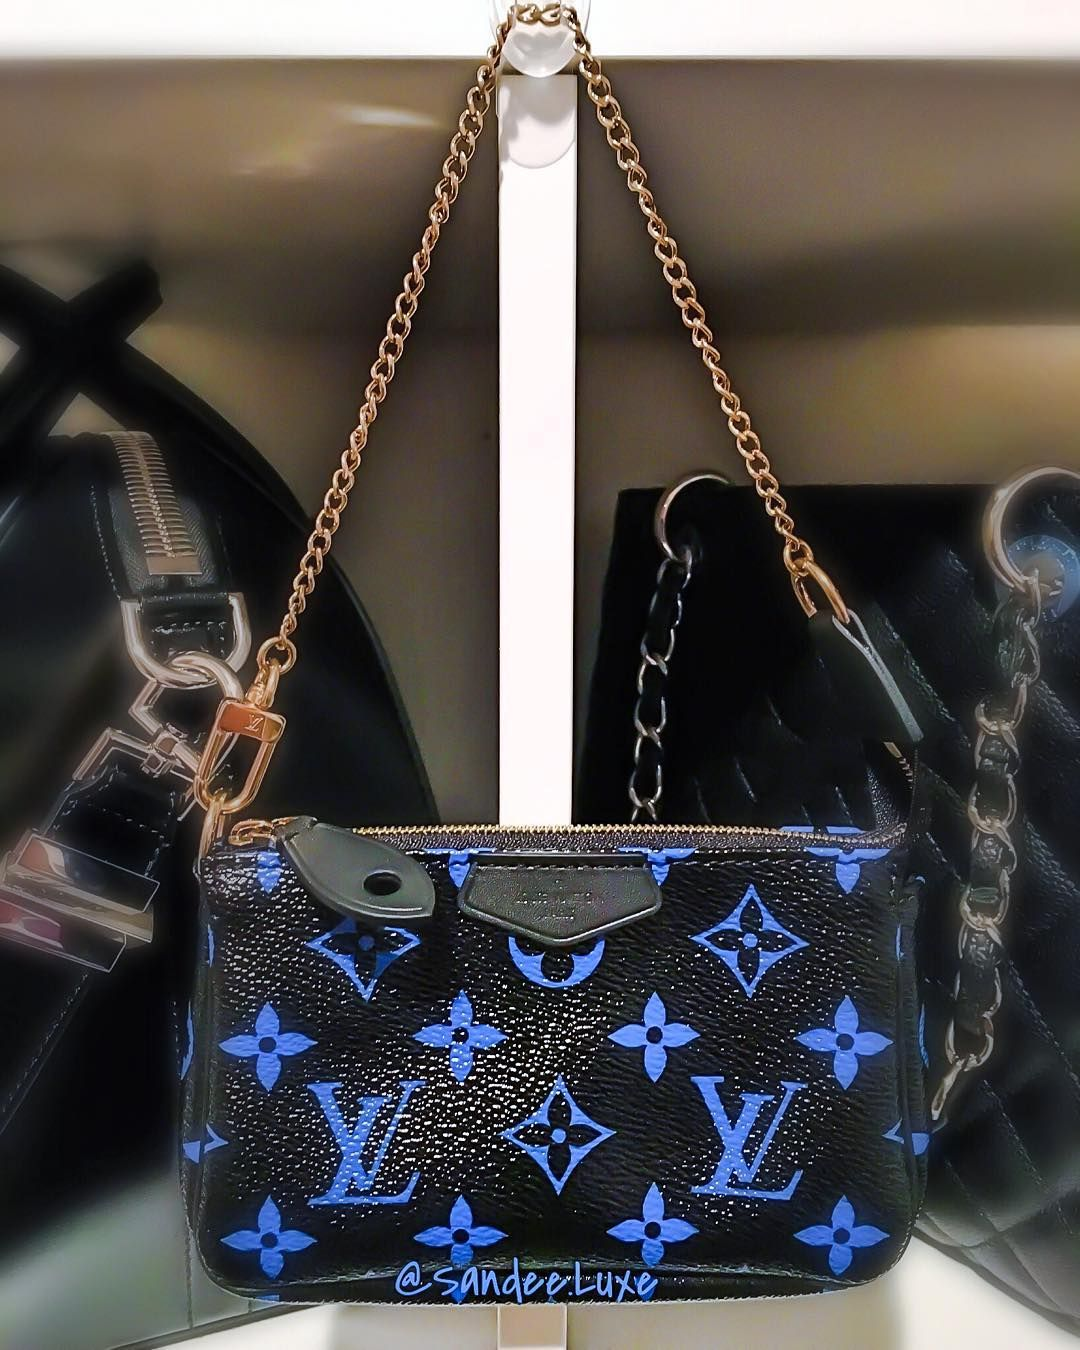 €300 Louis Vuitton Mini Pochette blue monogram from the new collection SS16 black and blue combination and black velvet interior with gold hardware